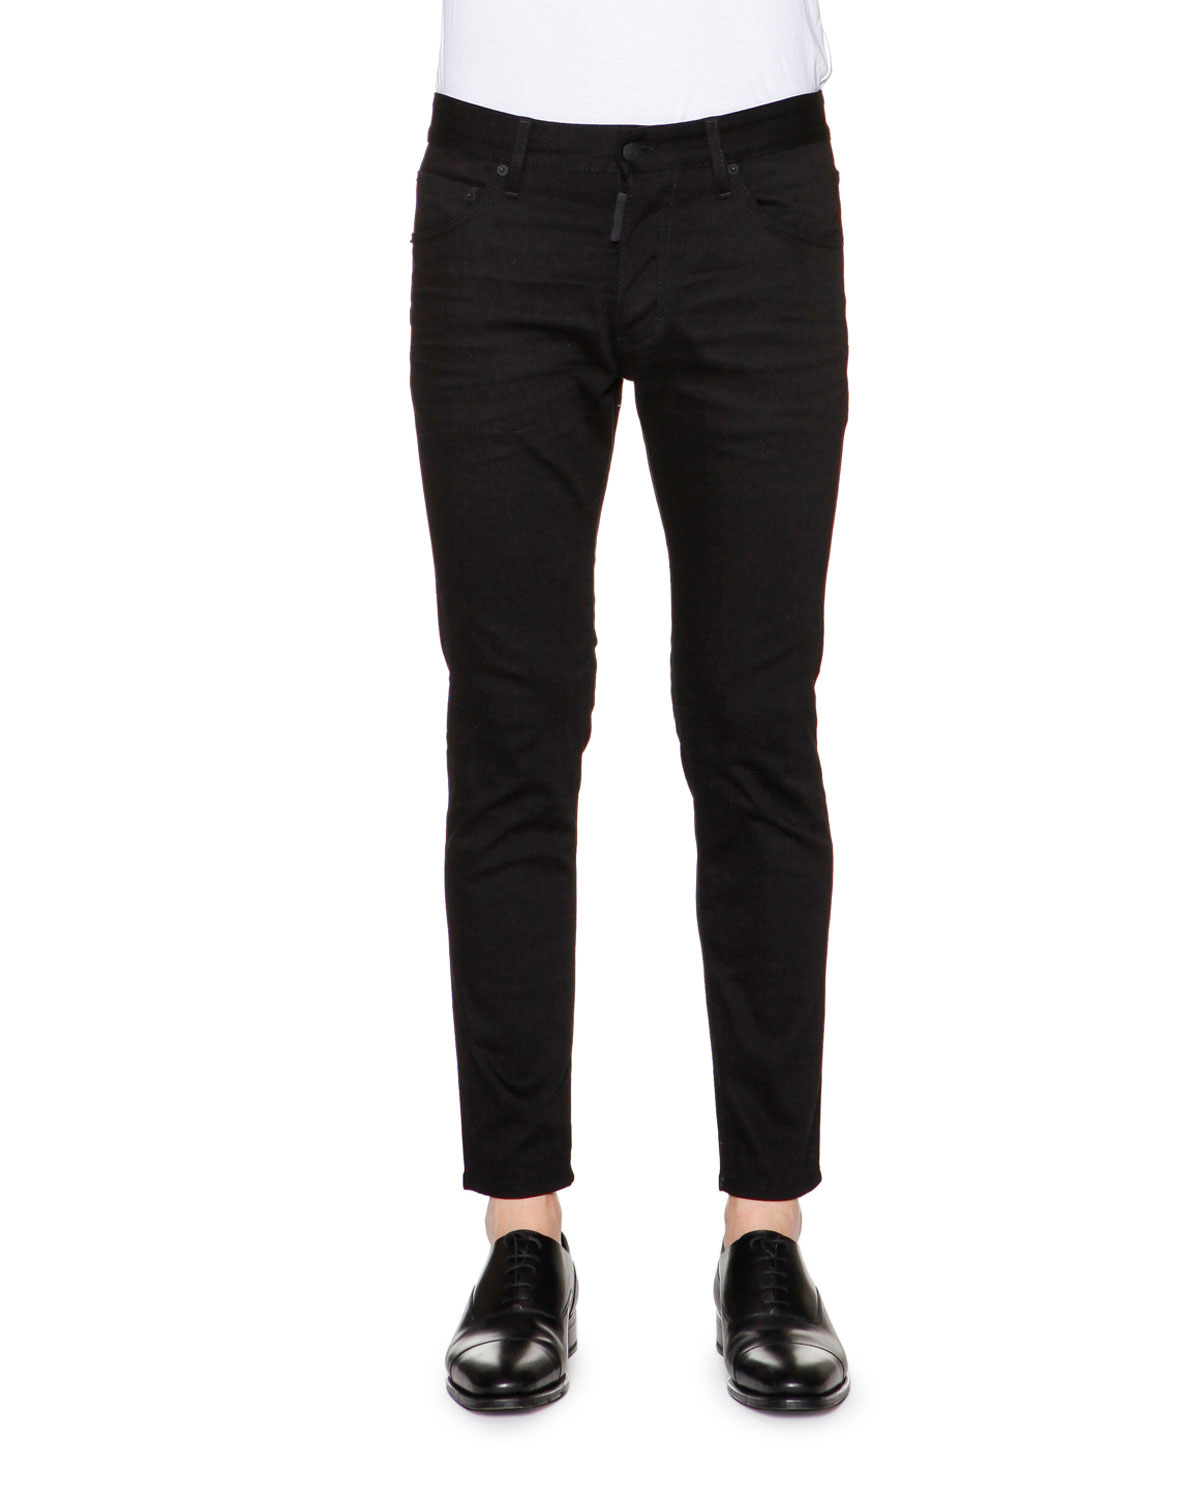 Shopping around for Black Skinny Jeans? Find a great selection of Women's Black Skinny Jeans, Juniors Black Skinny Jeans and Men's Black Skinny Jeans when you shop at Macy's. Macy's Presents: The Edit - A curated mix of fashion and inspiration Check It Out.